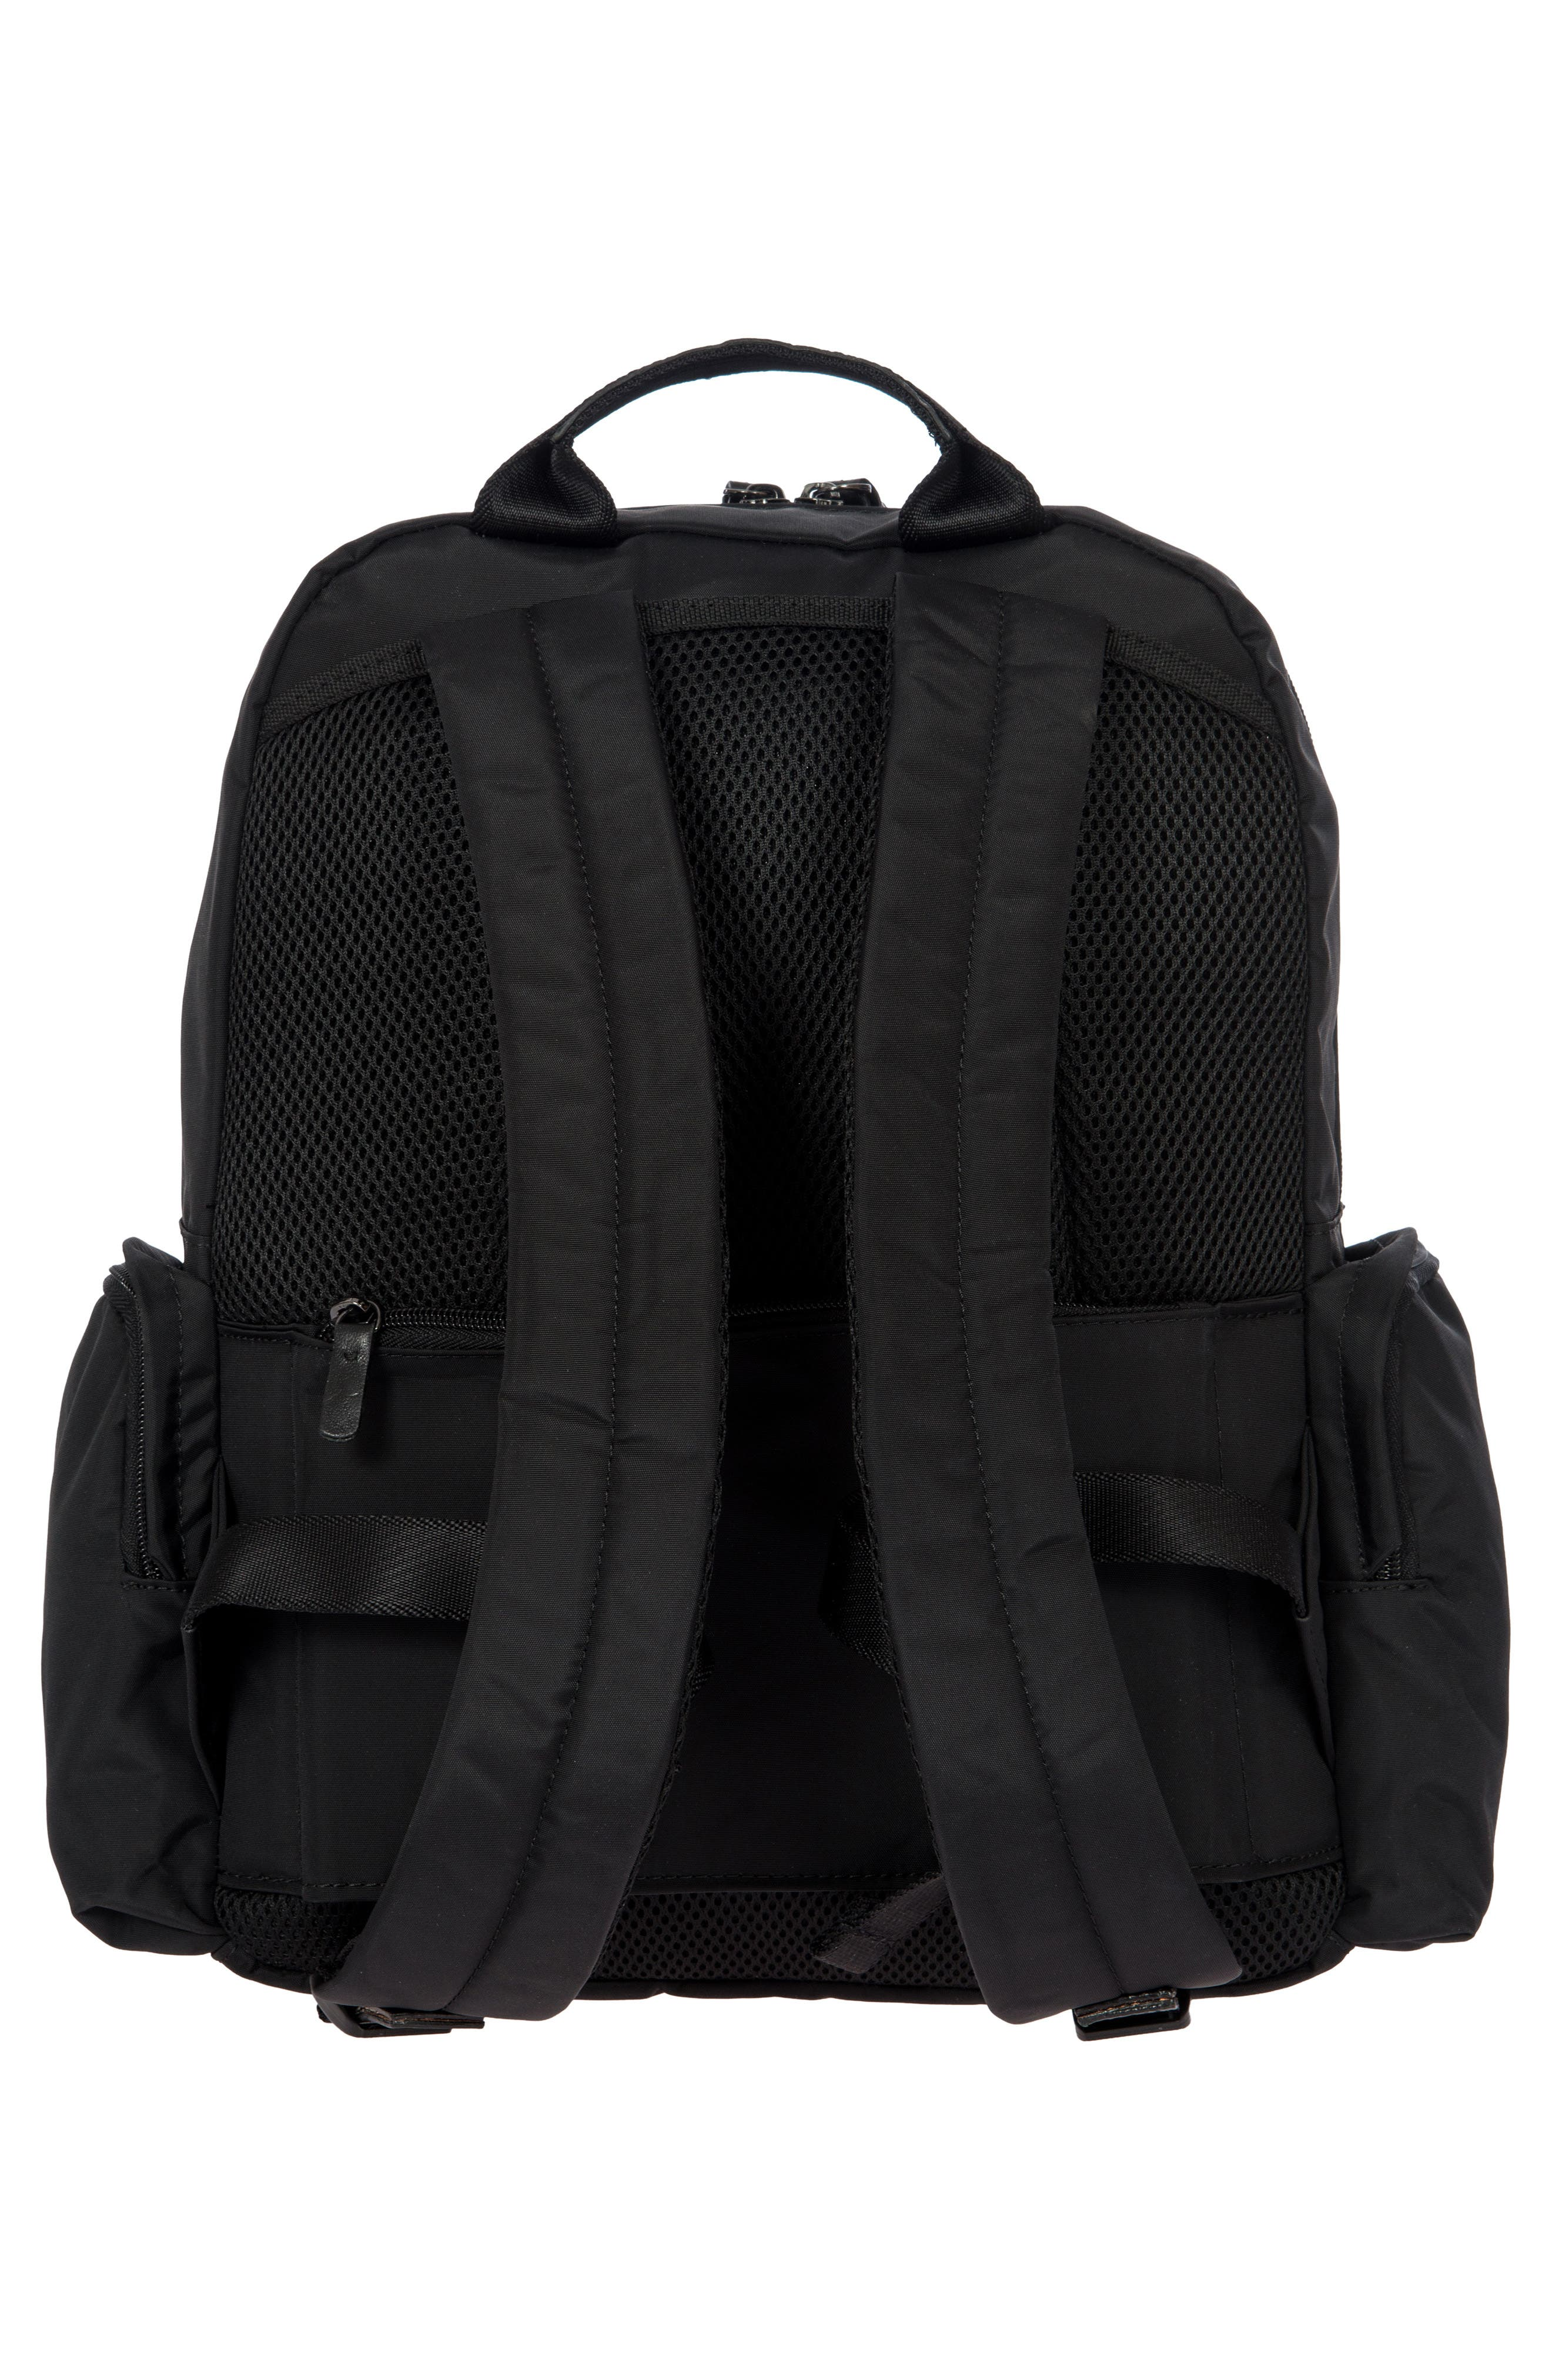 Alternate Image 2  - Bric's X-Travel Nomad Backpack